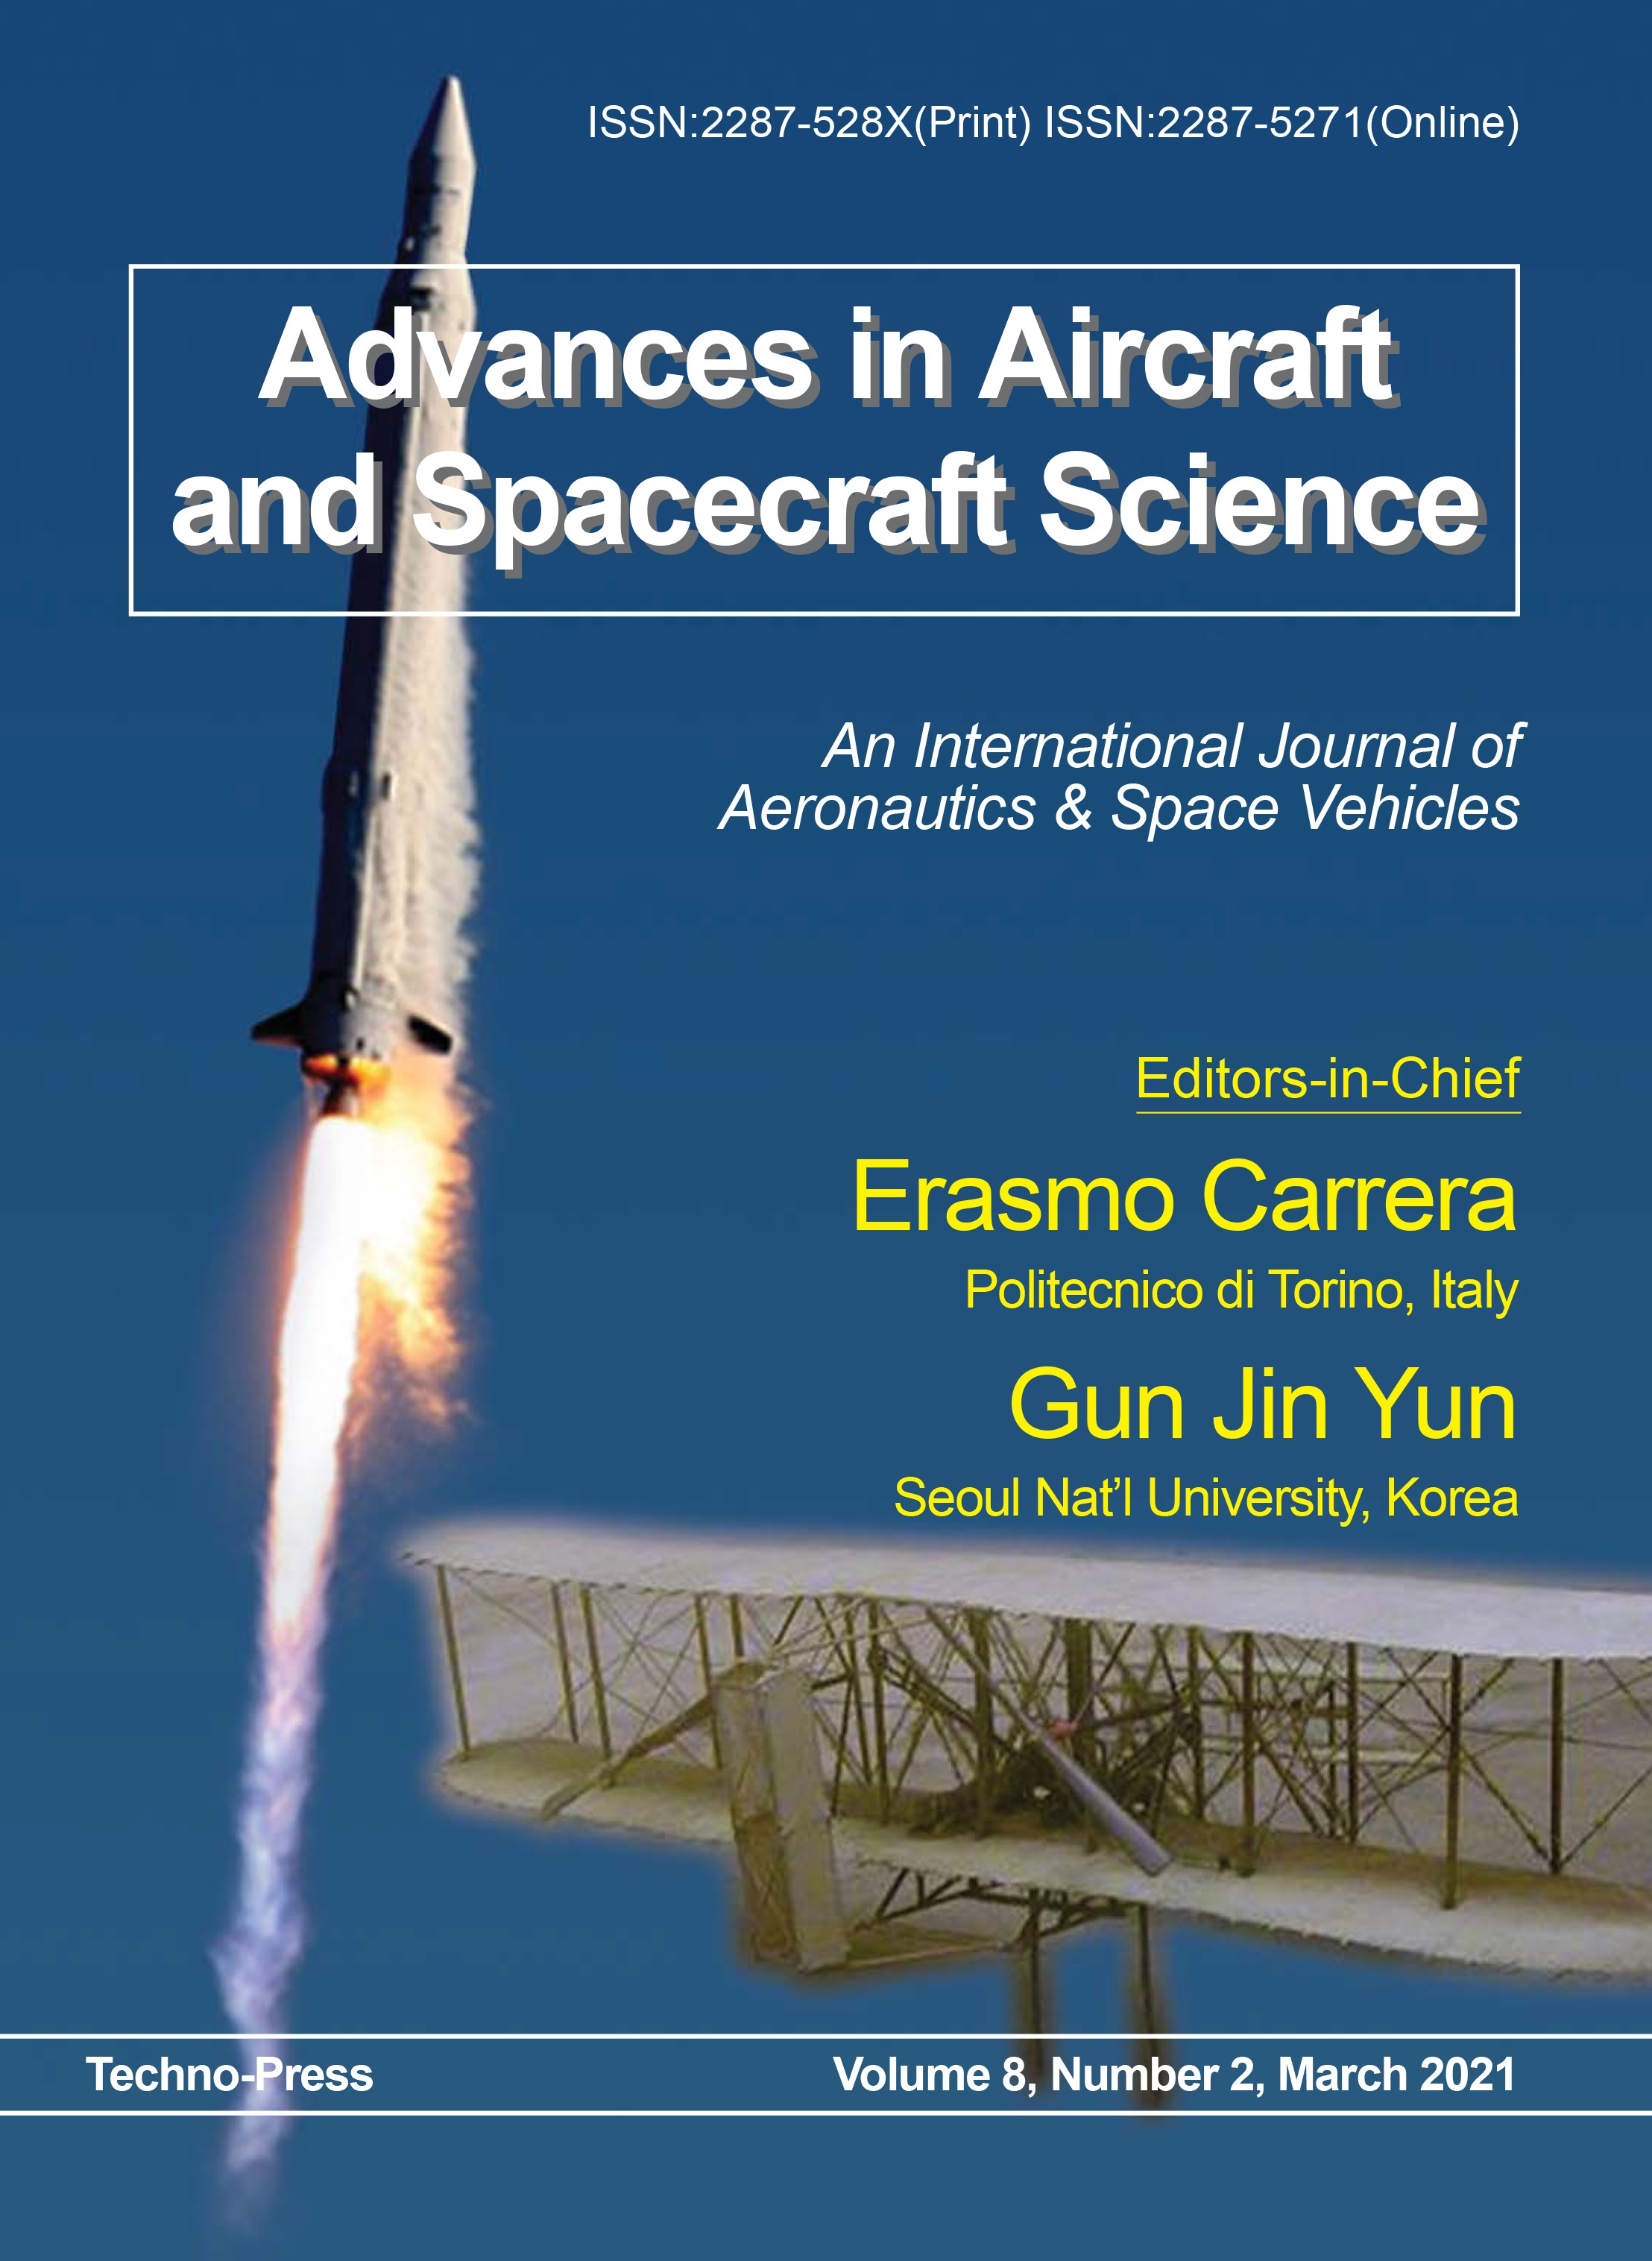 Advances in Aircraft and Spacecraft Science